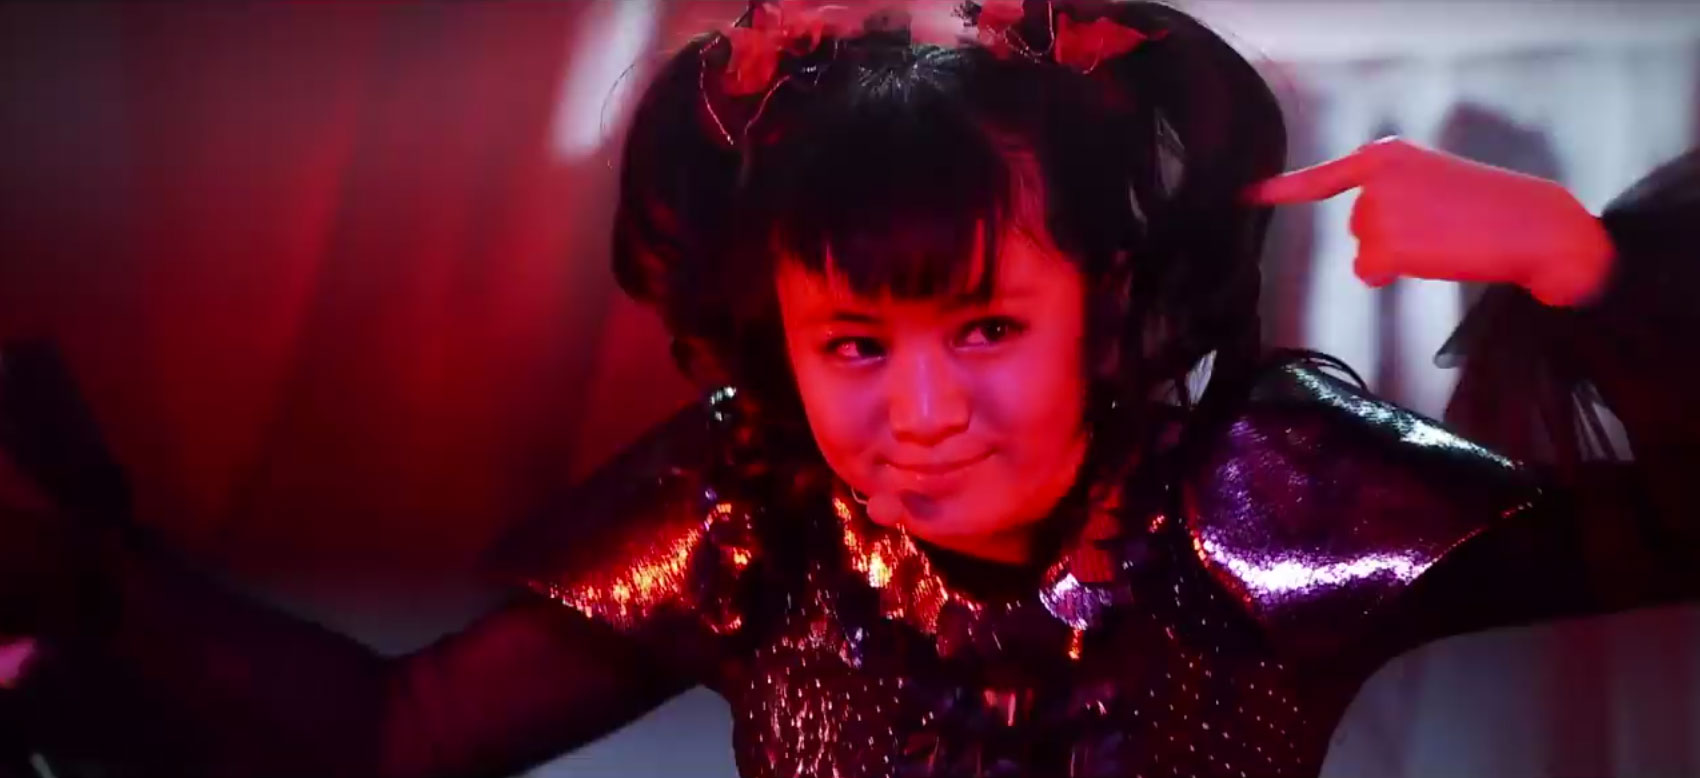 A Joining of Metal and J-Pop Births BABYMETAL